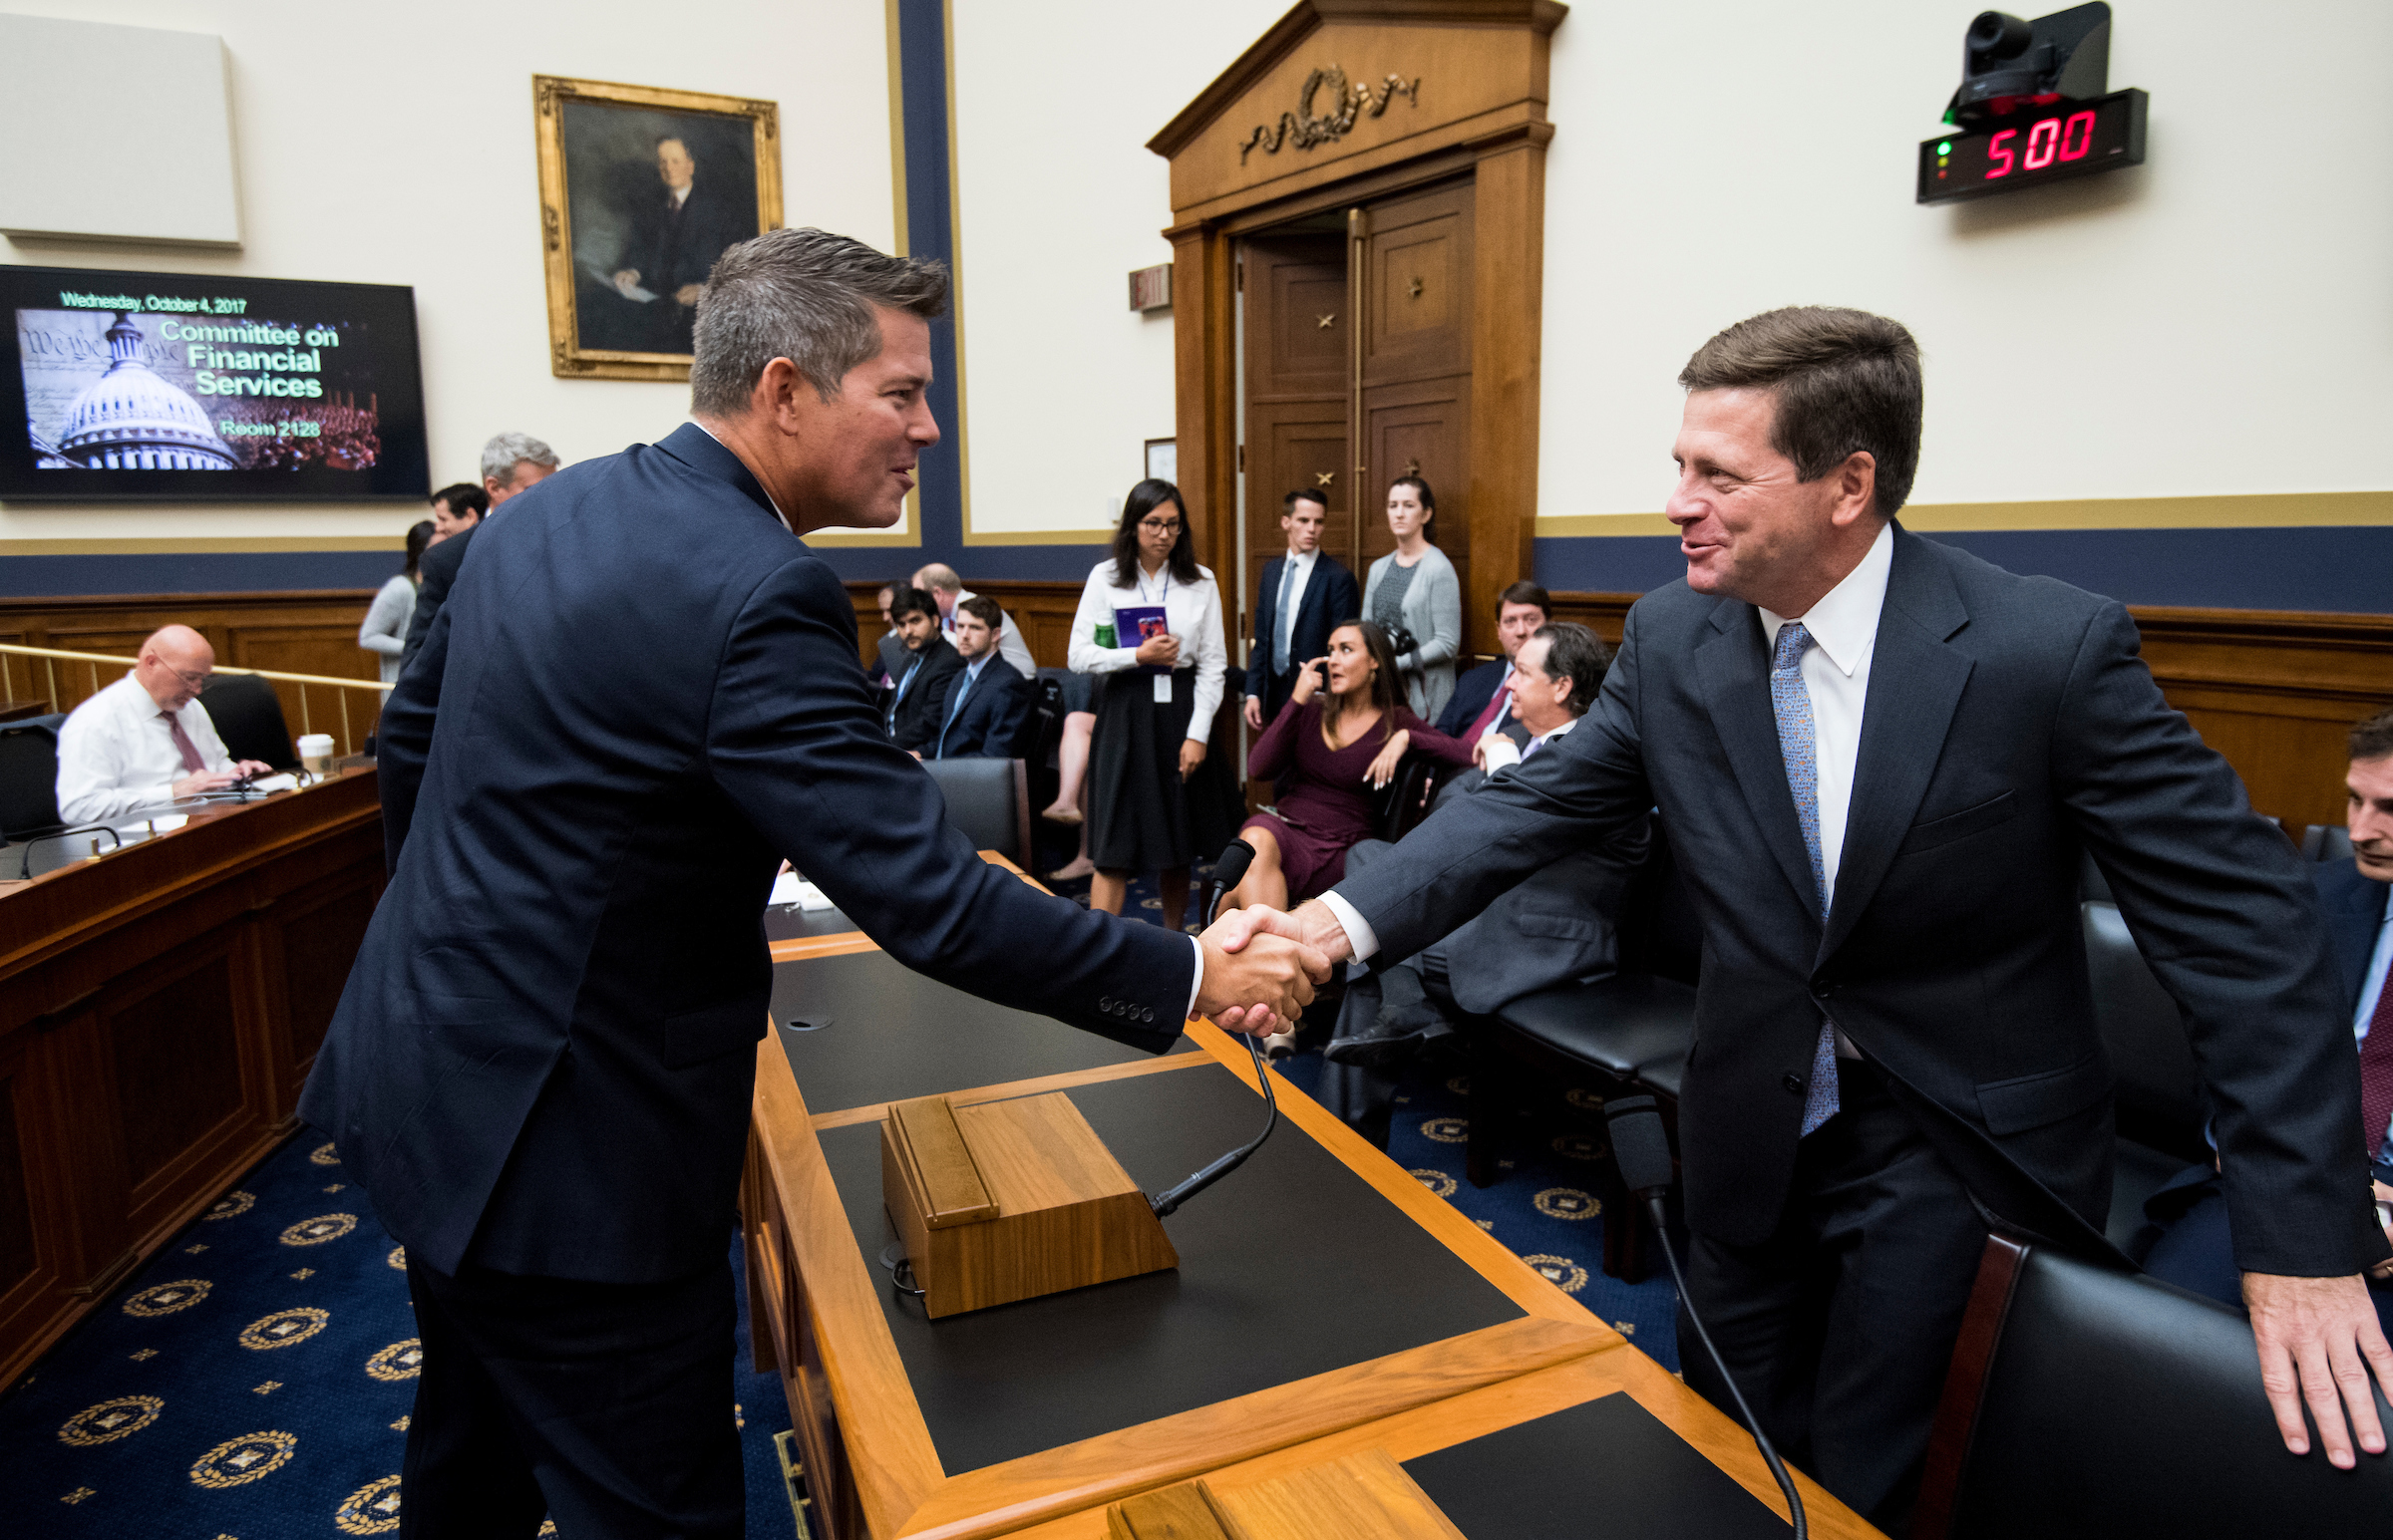 "UNITED STATES - OCTOBER 4: Rep. Sean Duffy, R-Wisc., shakes hands with SEC Chairman Jay Clayton before the start of the House Financial Services Committee hearing on ""Examining the SEC's Agenda, Operations, and Budget"" on Wednesday, Oct. 4, 2017.(Photo By Bill Clark/CQ Roll Call)"